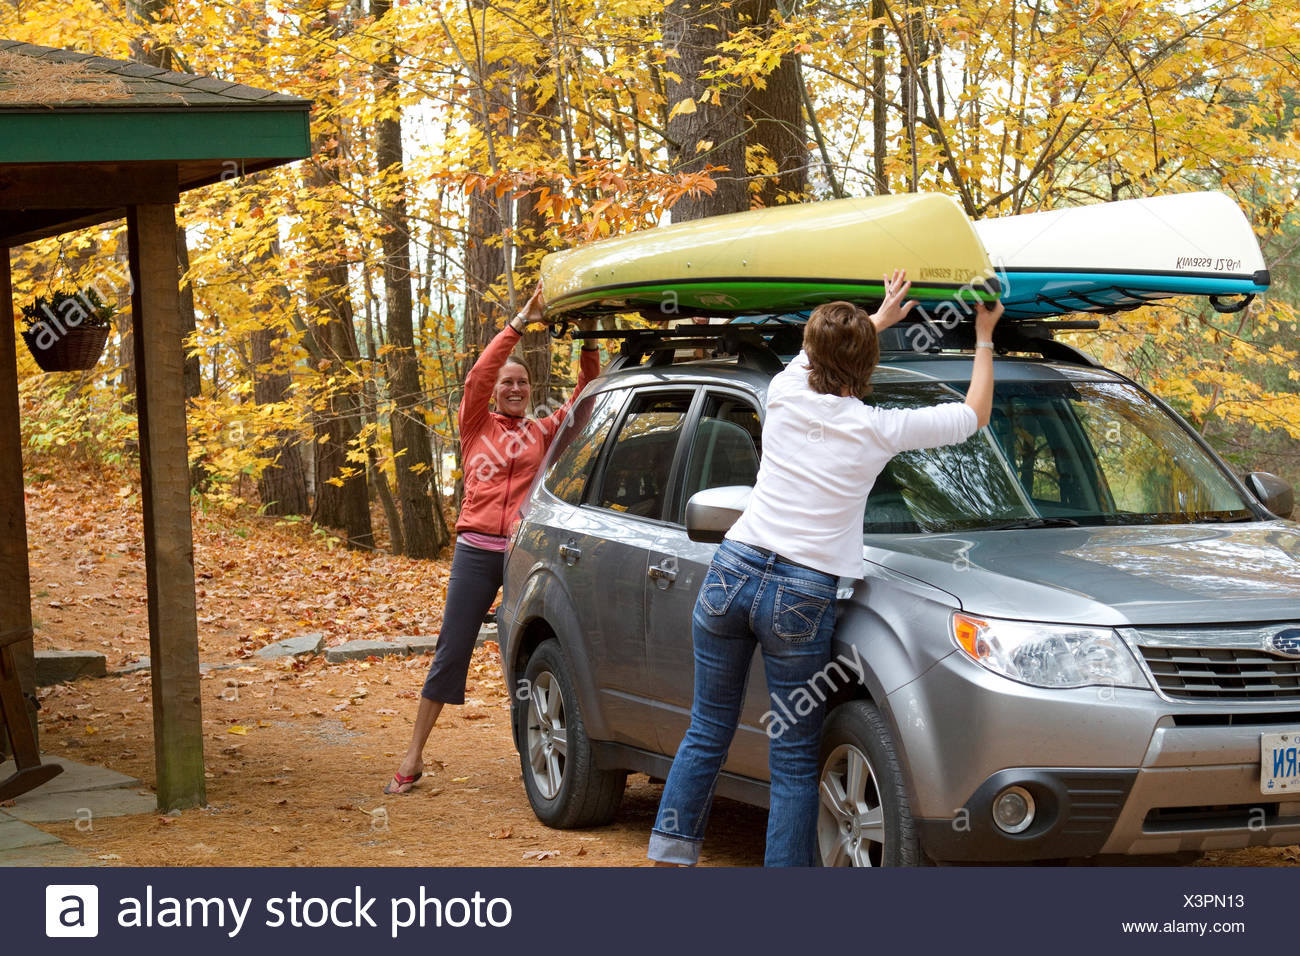 Two young women load kayaks on roof of vehicle at cottage near Oxtongue Lake, Muskoka, Ontario, Canada. - Stock Image